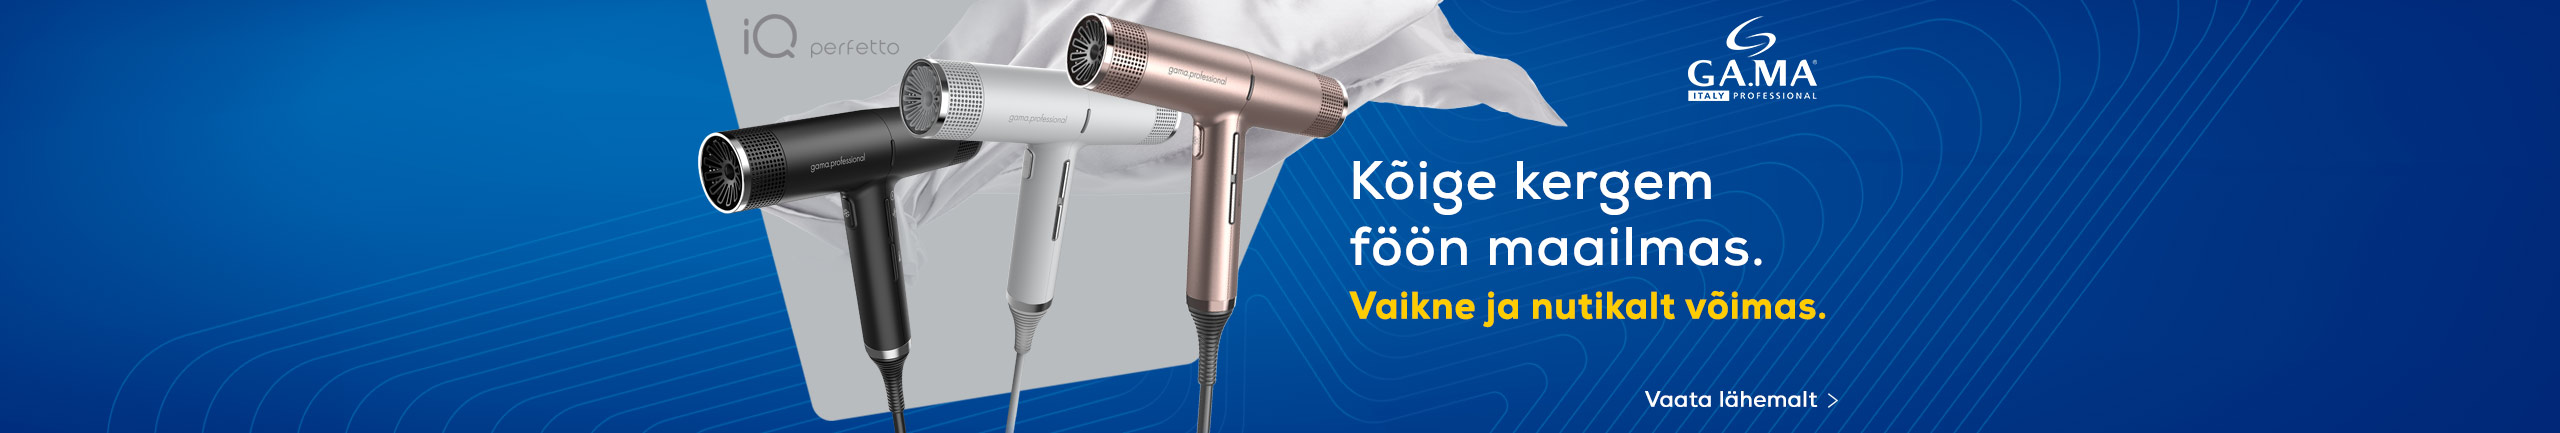 GA.MA iQ Perfetto - the lightest hairdryer in the market